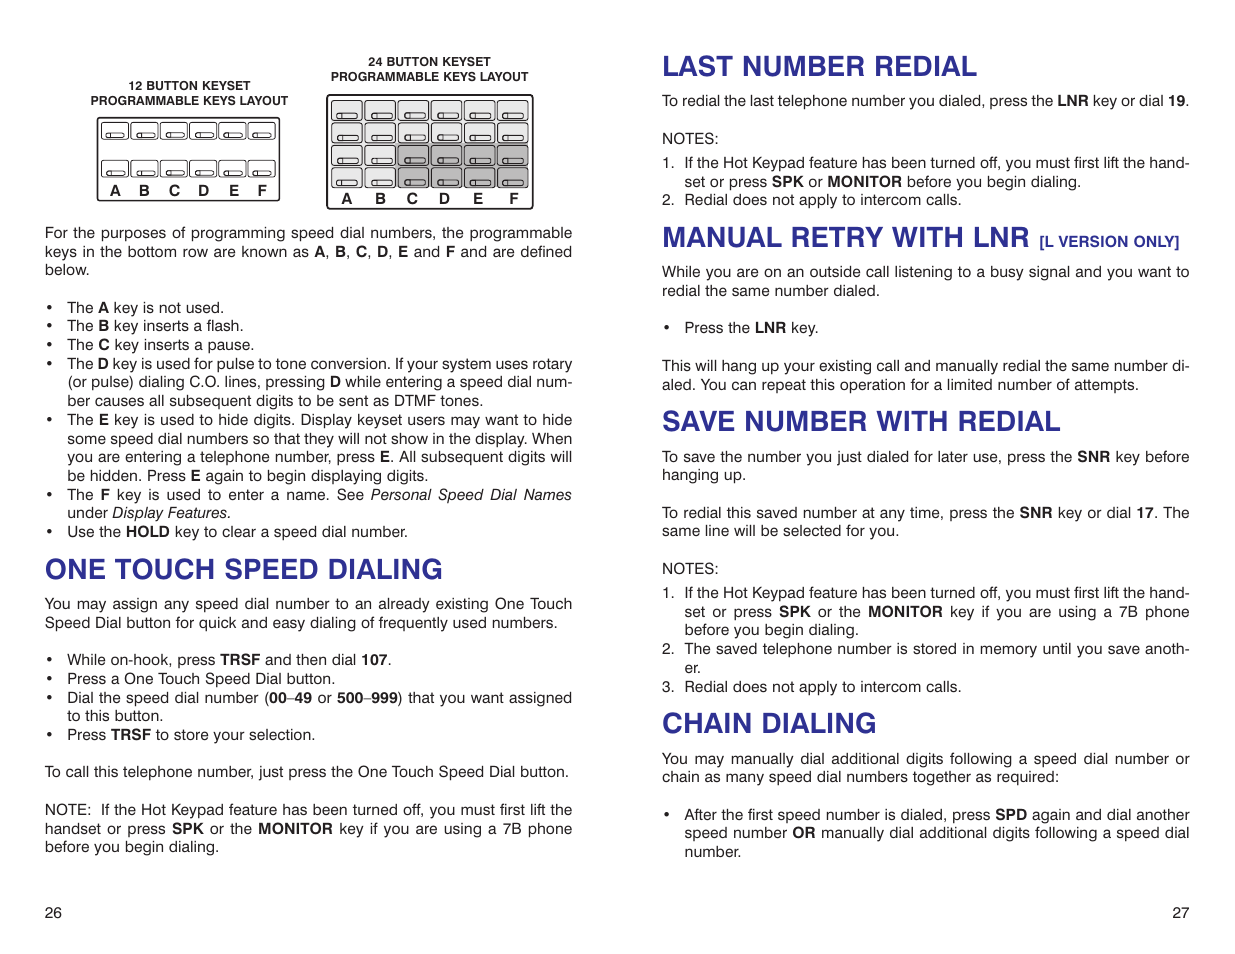 last number redial manual retry with lnr save number with redial rh manualsdir com samsung idcs 28d programming manual samsung idcs programming manual